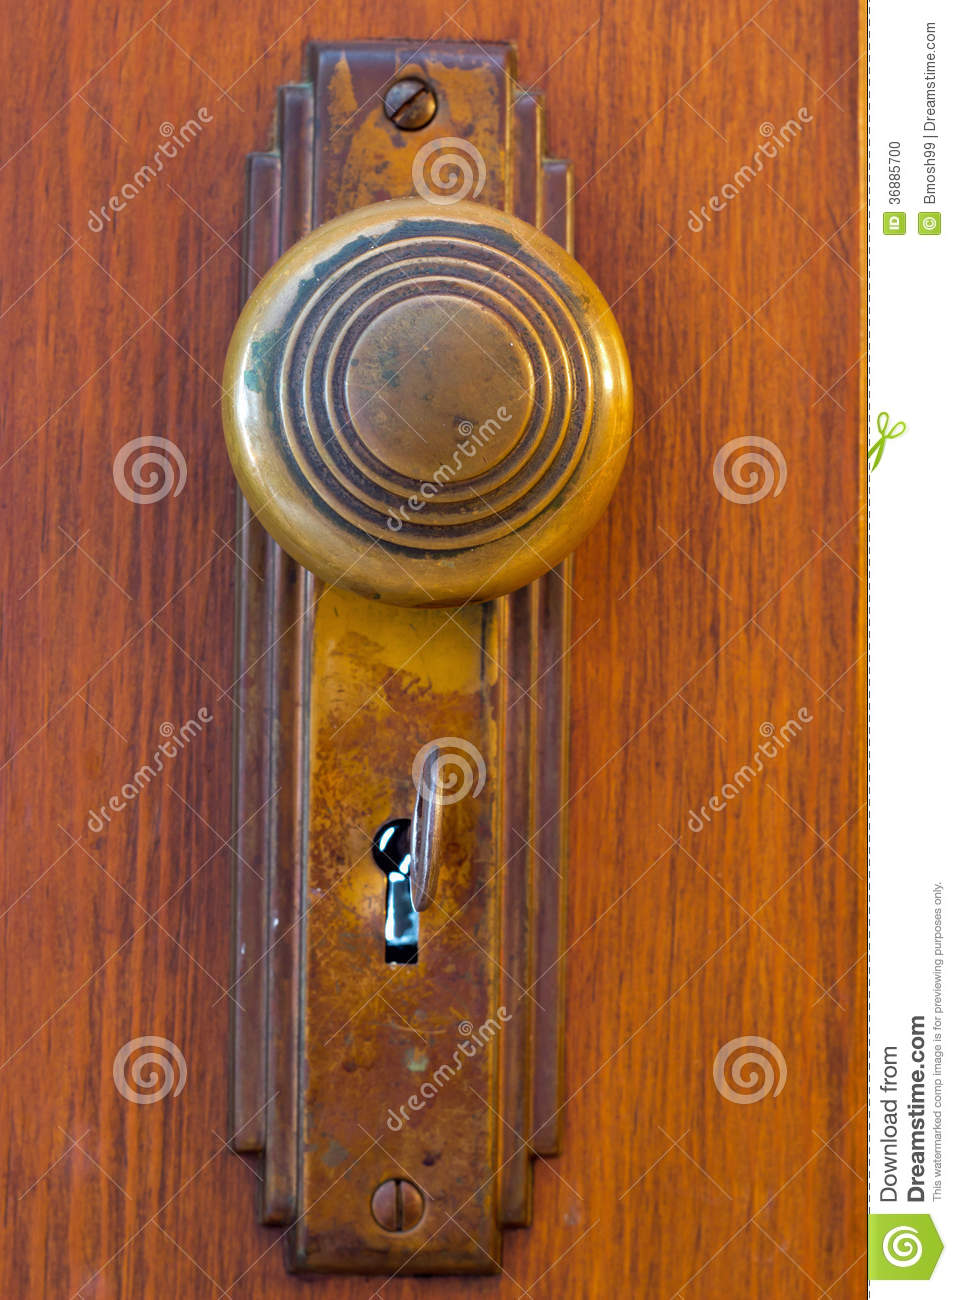 Old Door Knob With Key Stock Photo Image 36885700